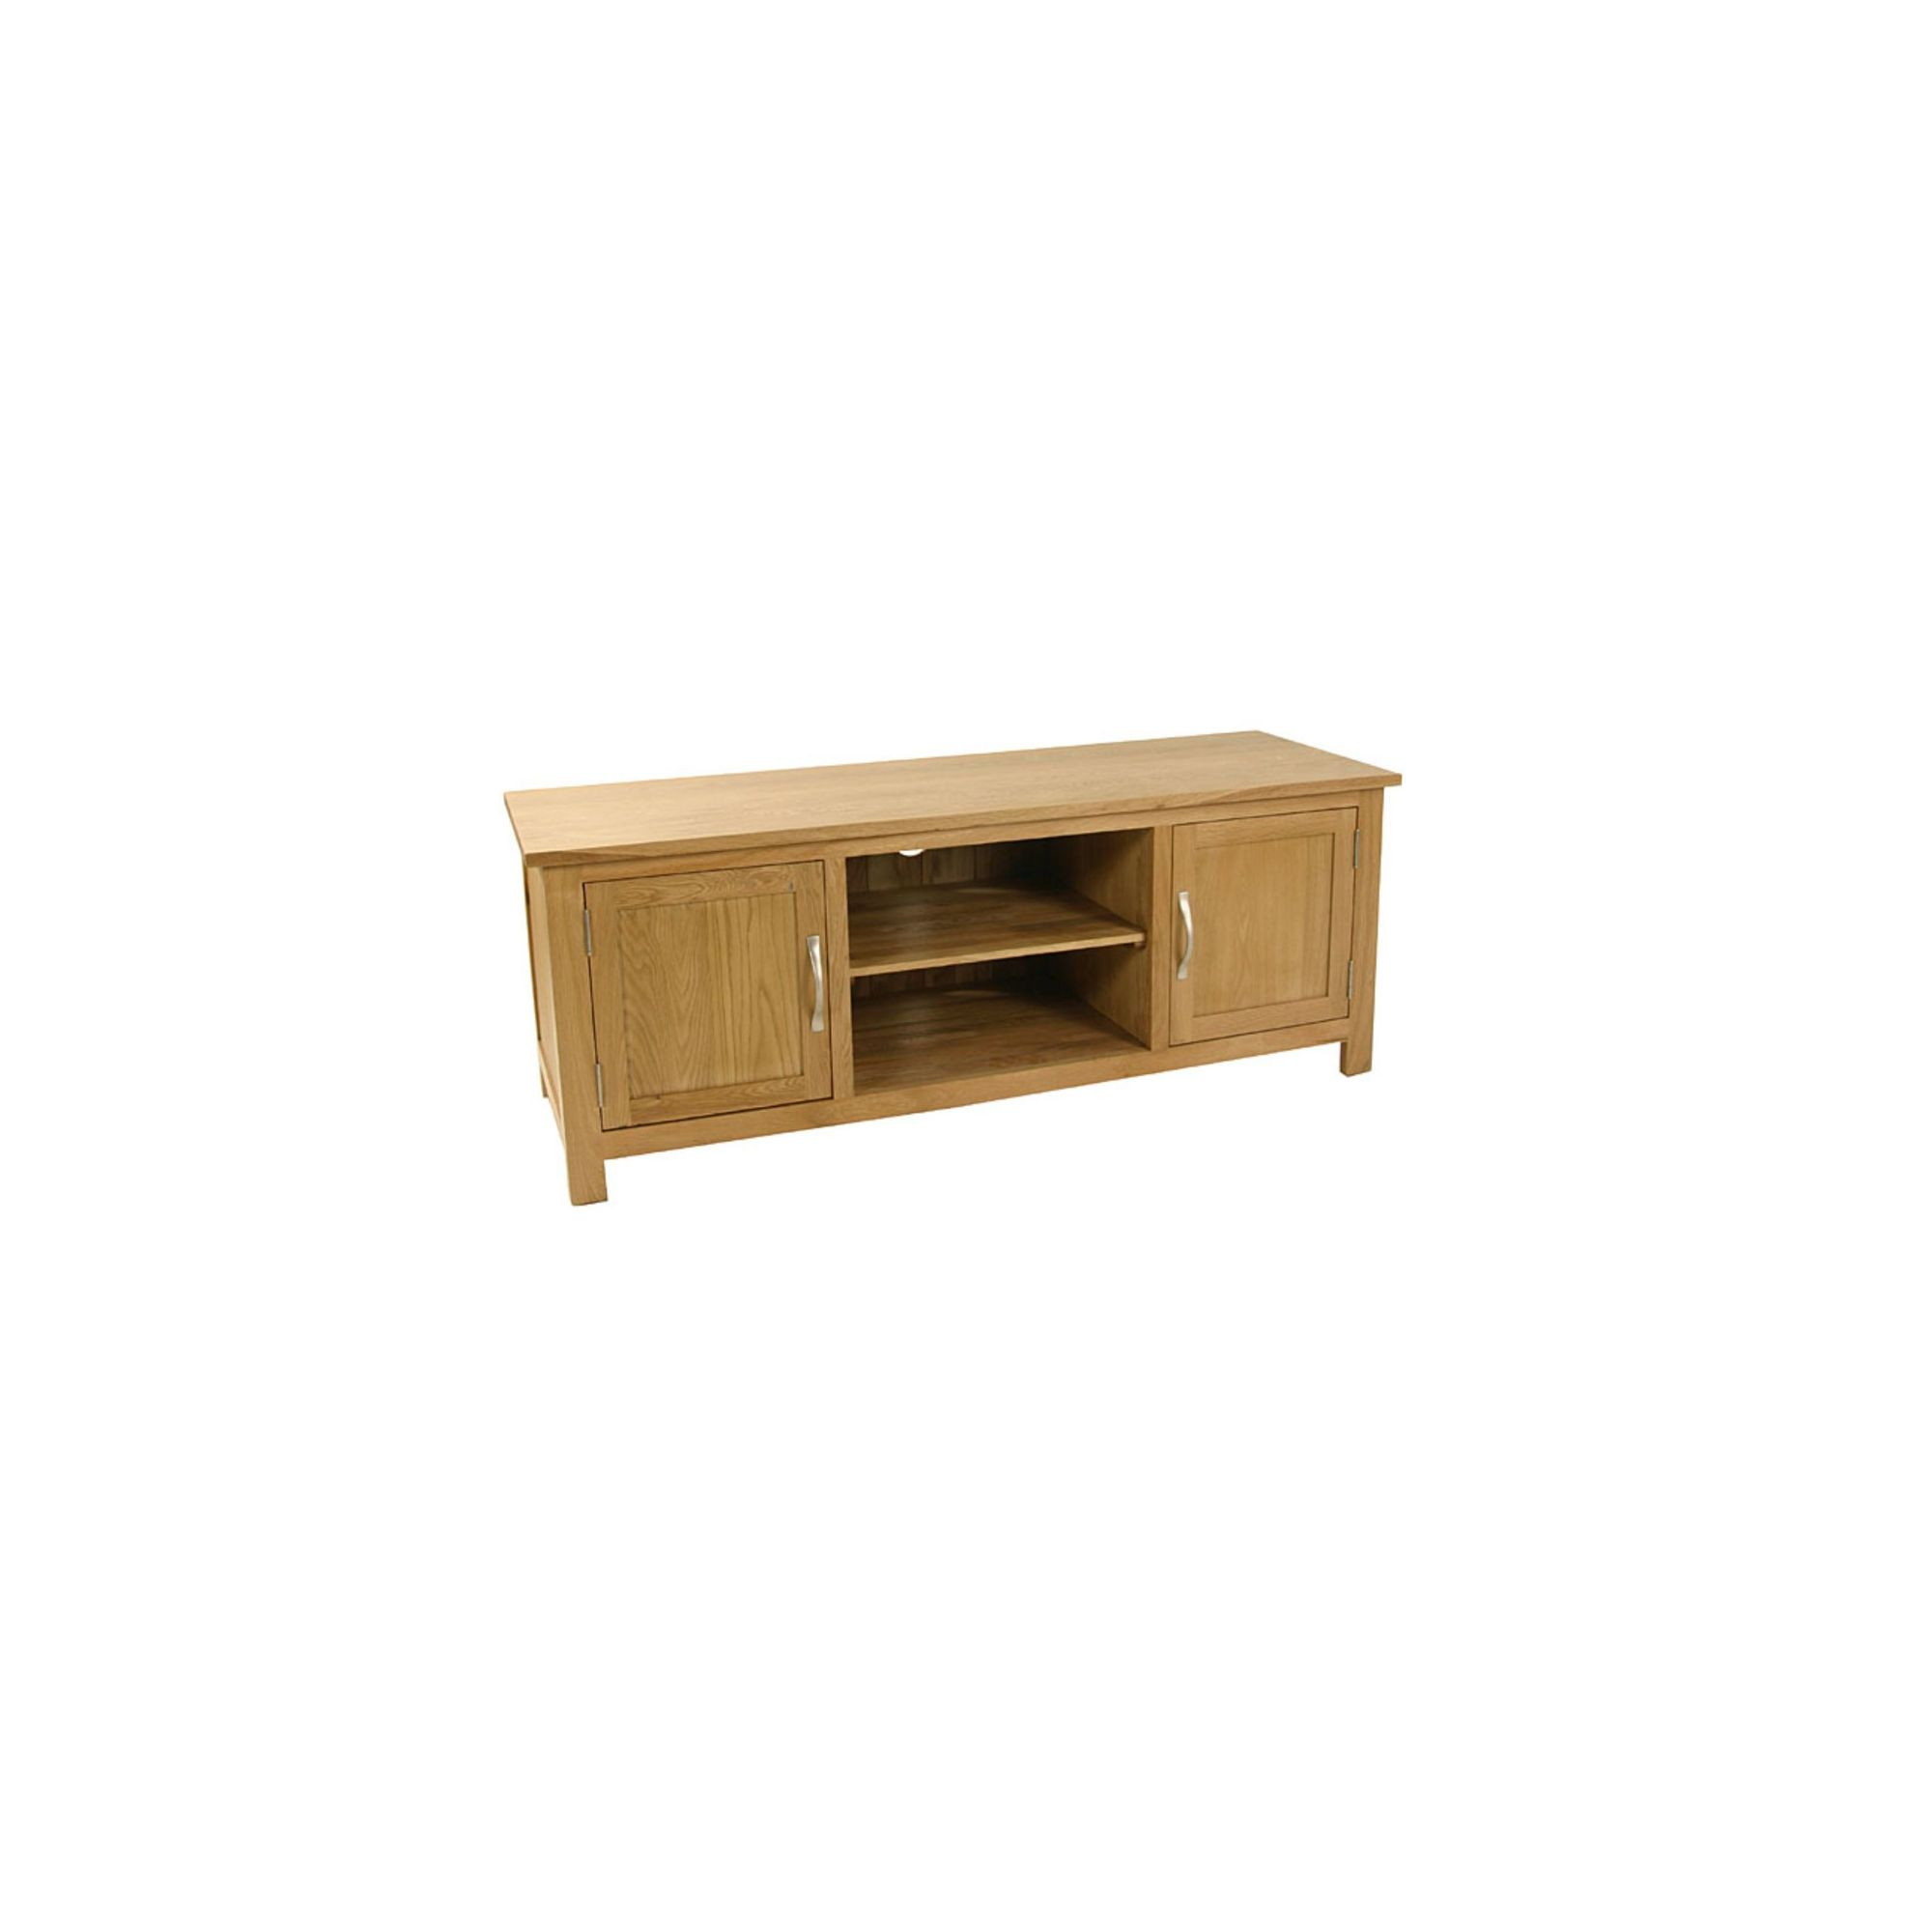 Kelburn Furniture Essentials 125cm Plasma TV Stand in Light Oak Stain and Satin Lacquer at Tescos Direct